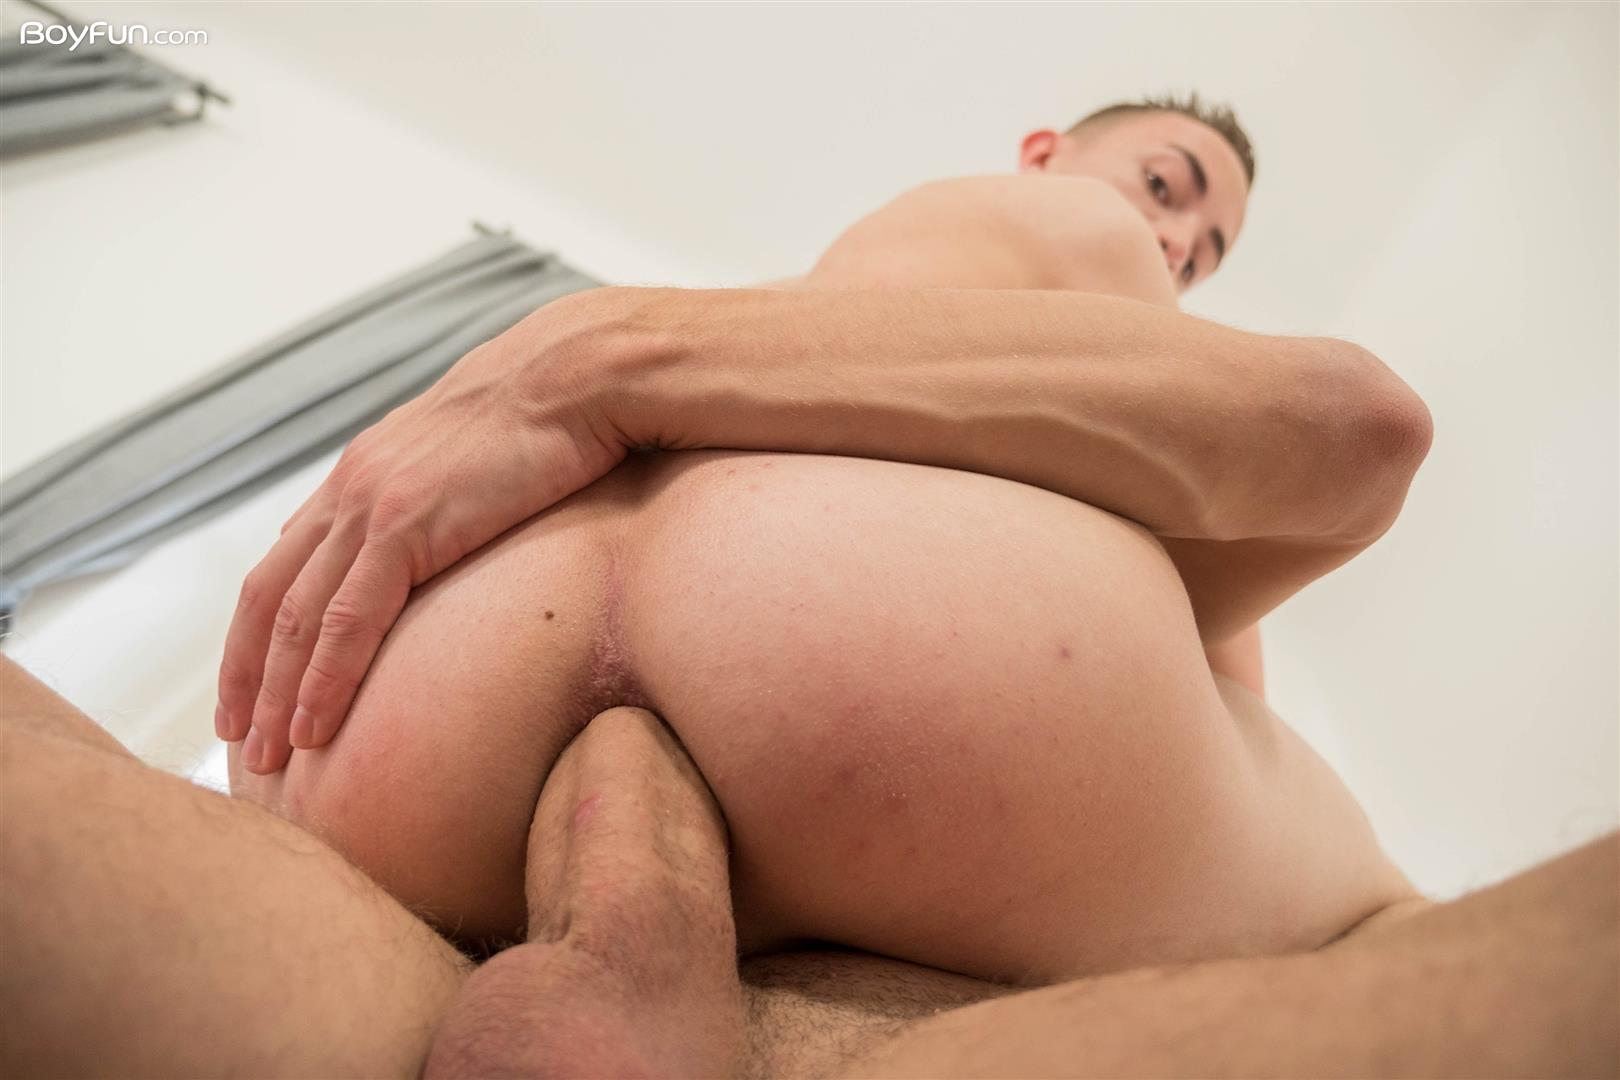 Boy-Fun-Nick-Danner-and-Tommy-Hunter-Big-Dick-Twinks-Hotel-bareback-sex-video-33 Colombian Hottie Nick Danner Takes A Big Raw Twink Cock Up The Ass